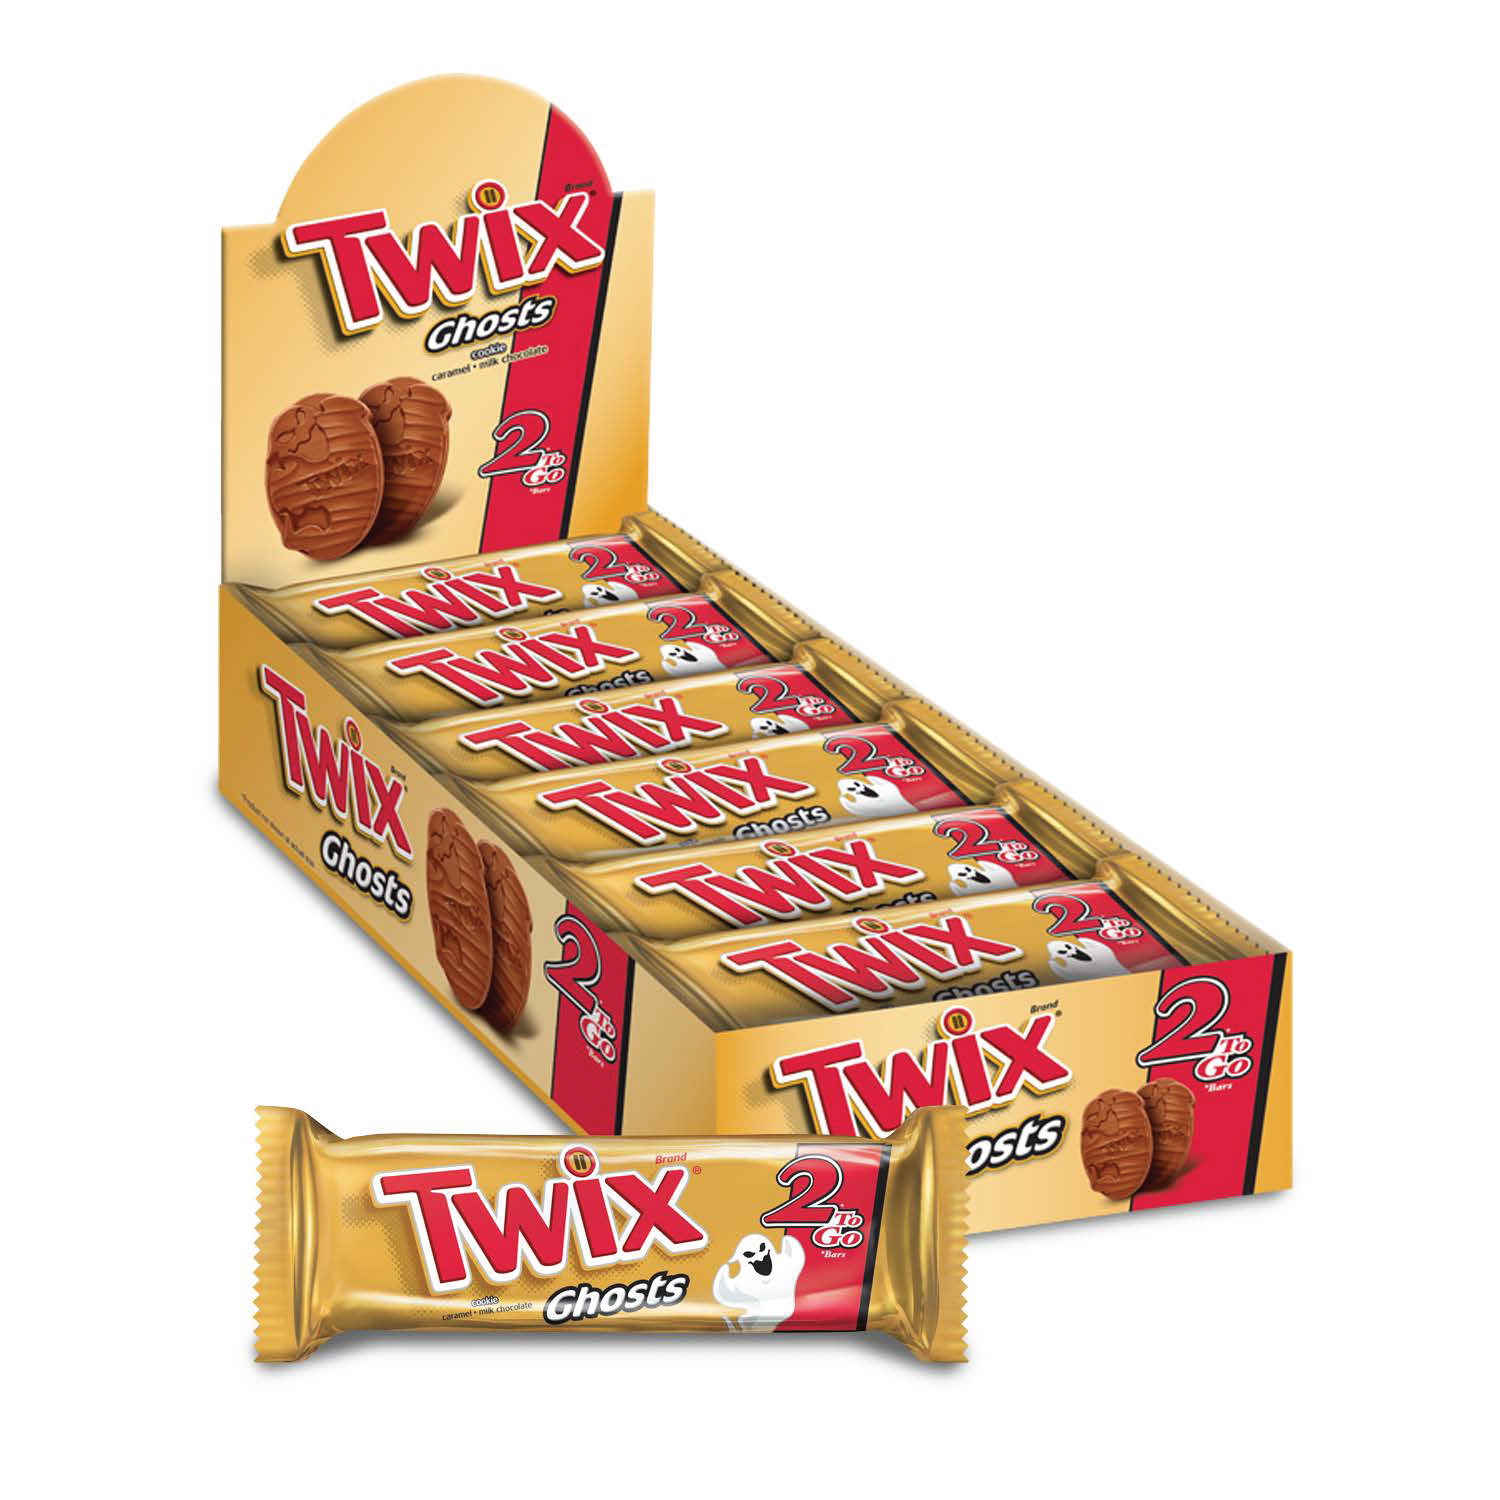 Twix, Ghosts 2-To-Go Chocolate Singles Cookies, 2.12 Oz, 24 Ct